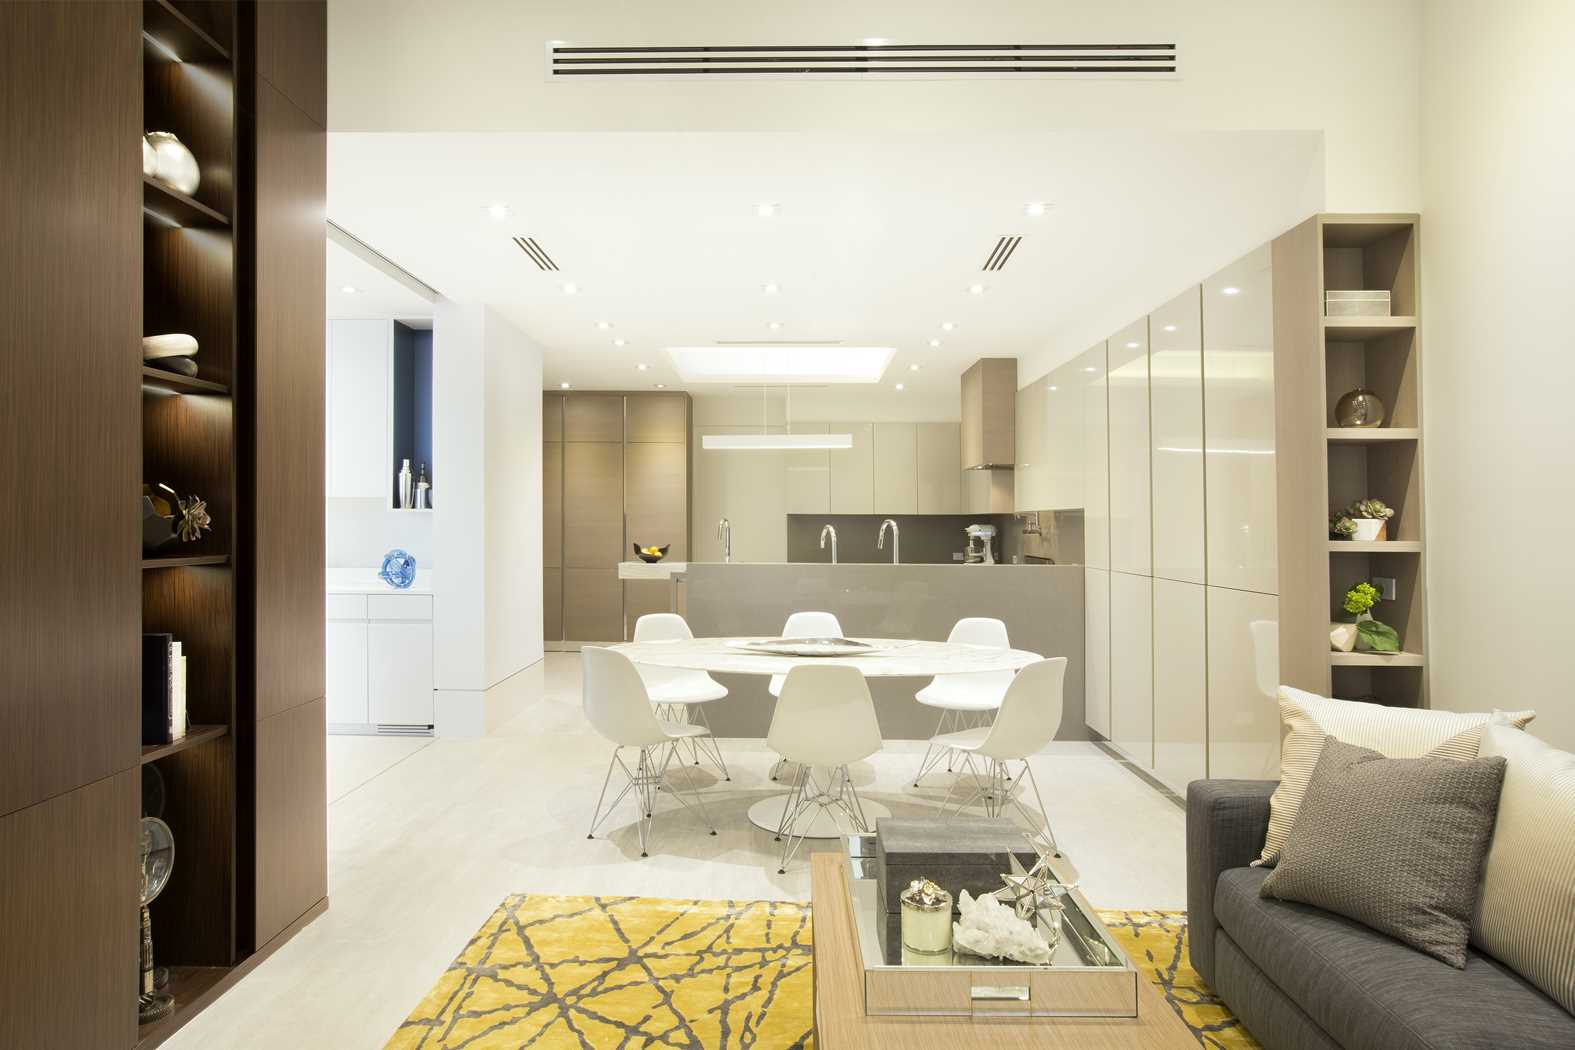 Contemporary Home Renovation by DKOR Interiors on Interior:ybeqvfpgwcq= Modern House  id=95000